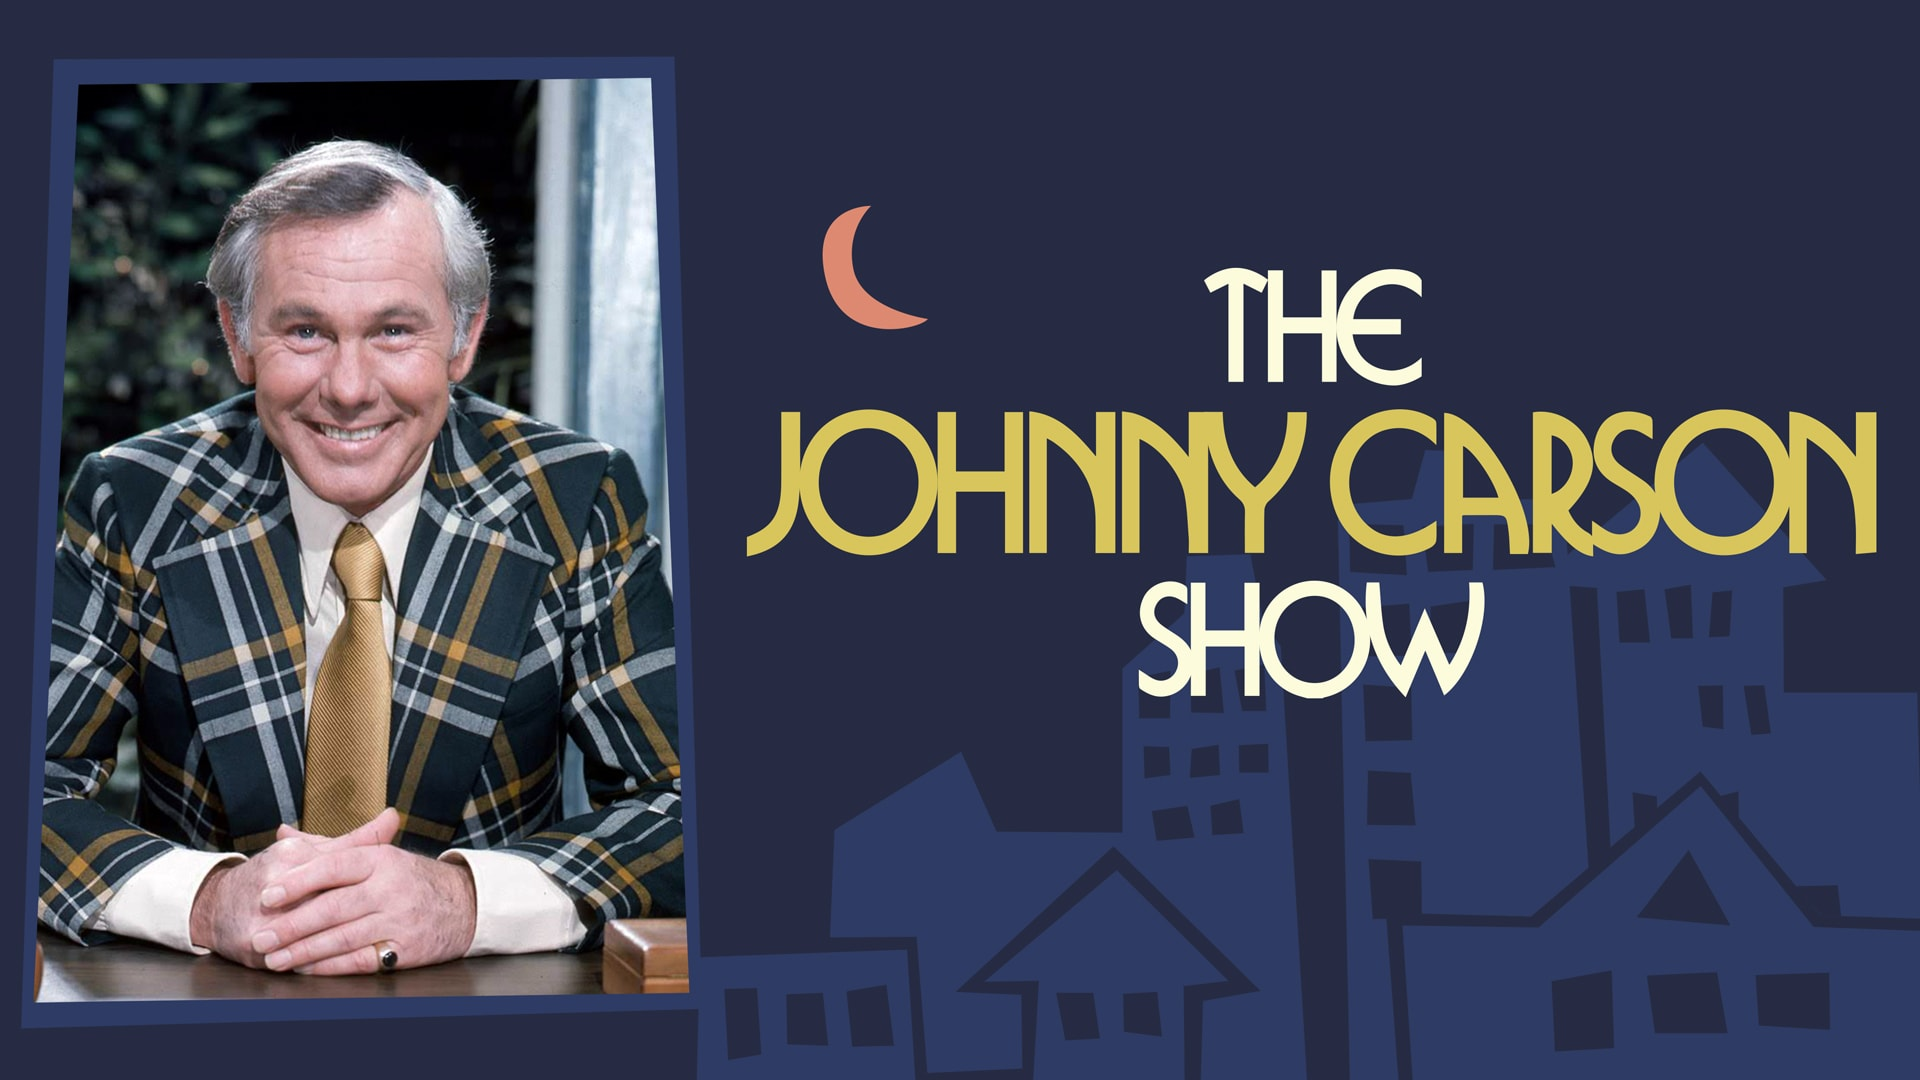 The Johnny Carson Show: Comic Legends Of The '80s - Gallagher (5/9/79)